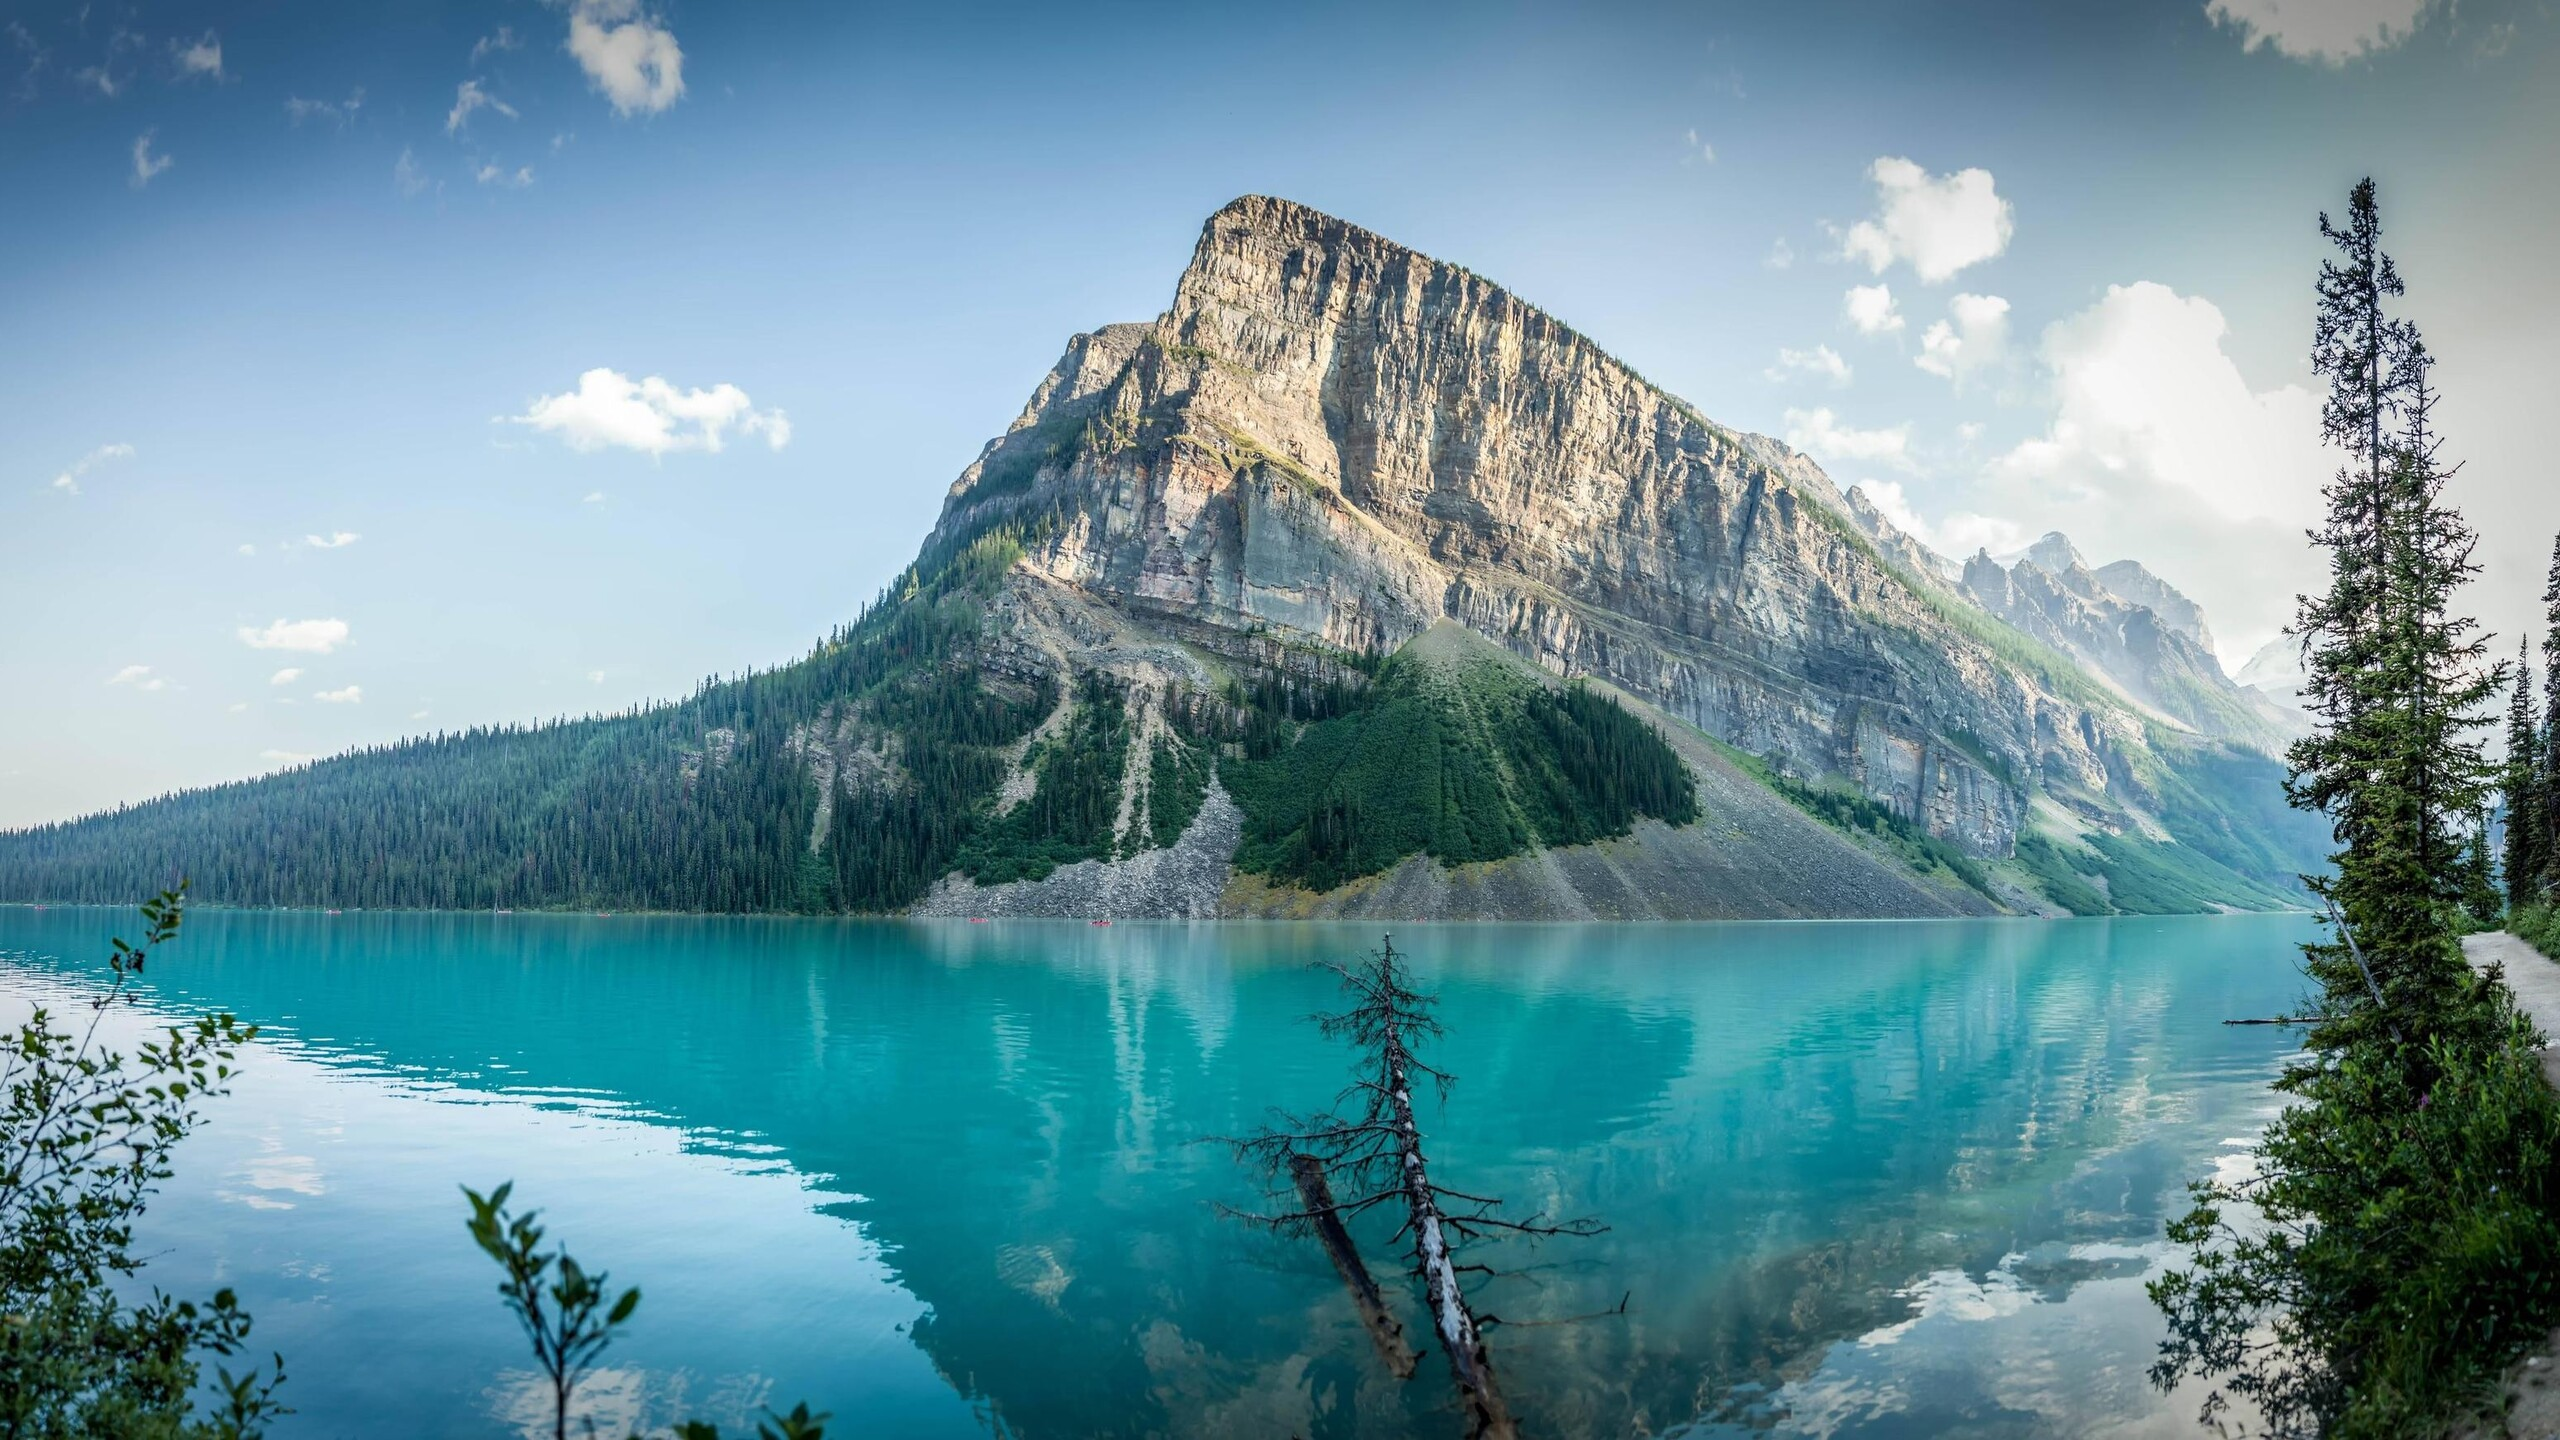 2560x1440 lake louise 4k 1440p resolution hd 4k wallpapers, images